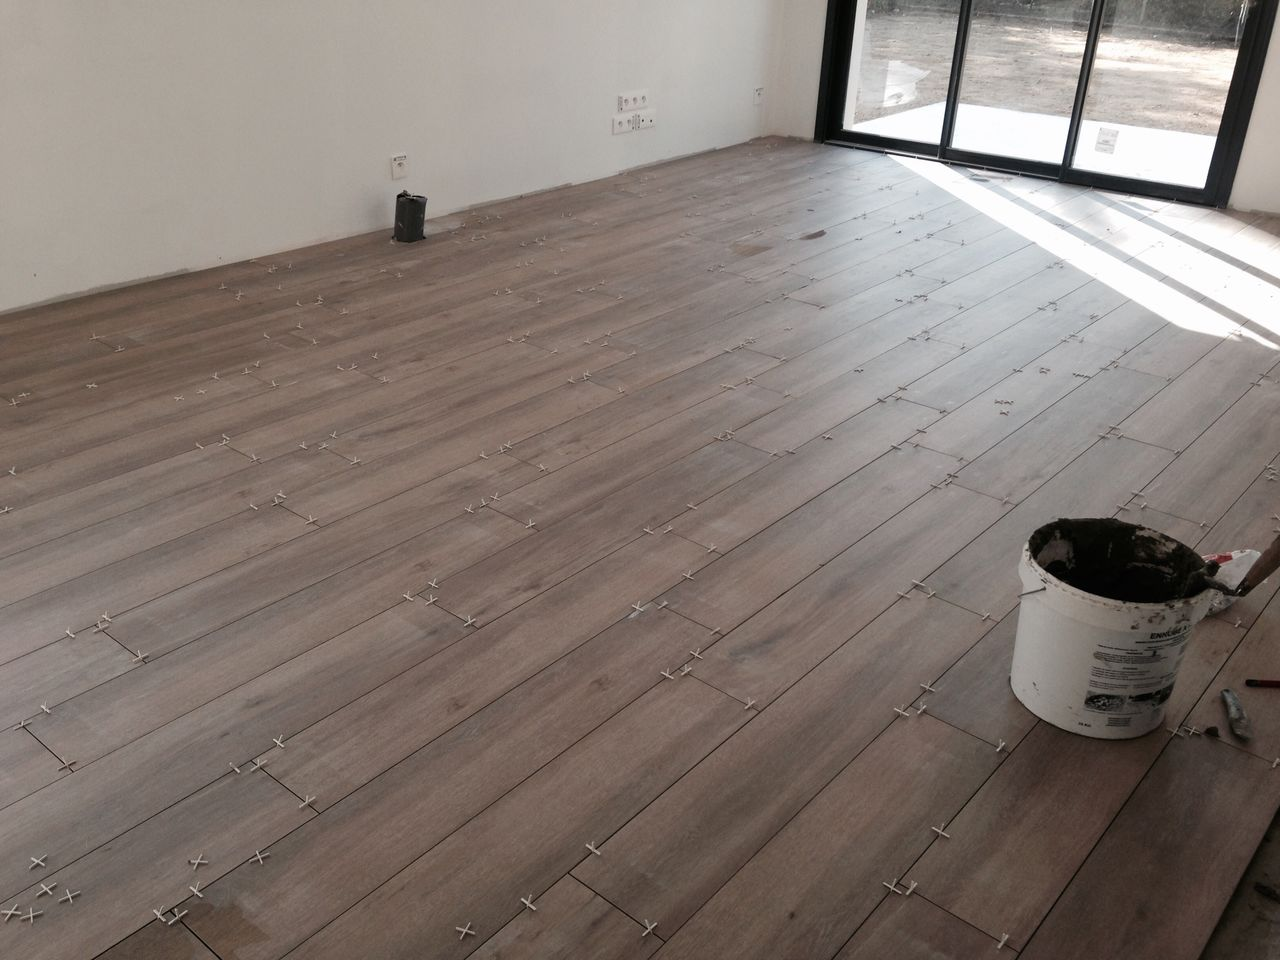 Quelle couleur de joints pour carrelage imitation parquet for Parquet imitation carrelage